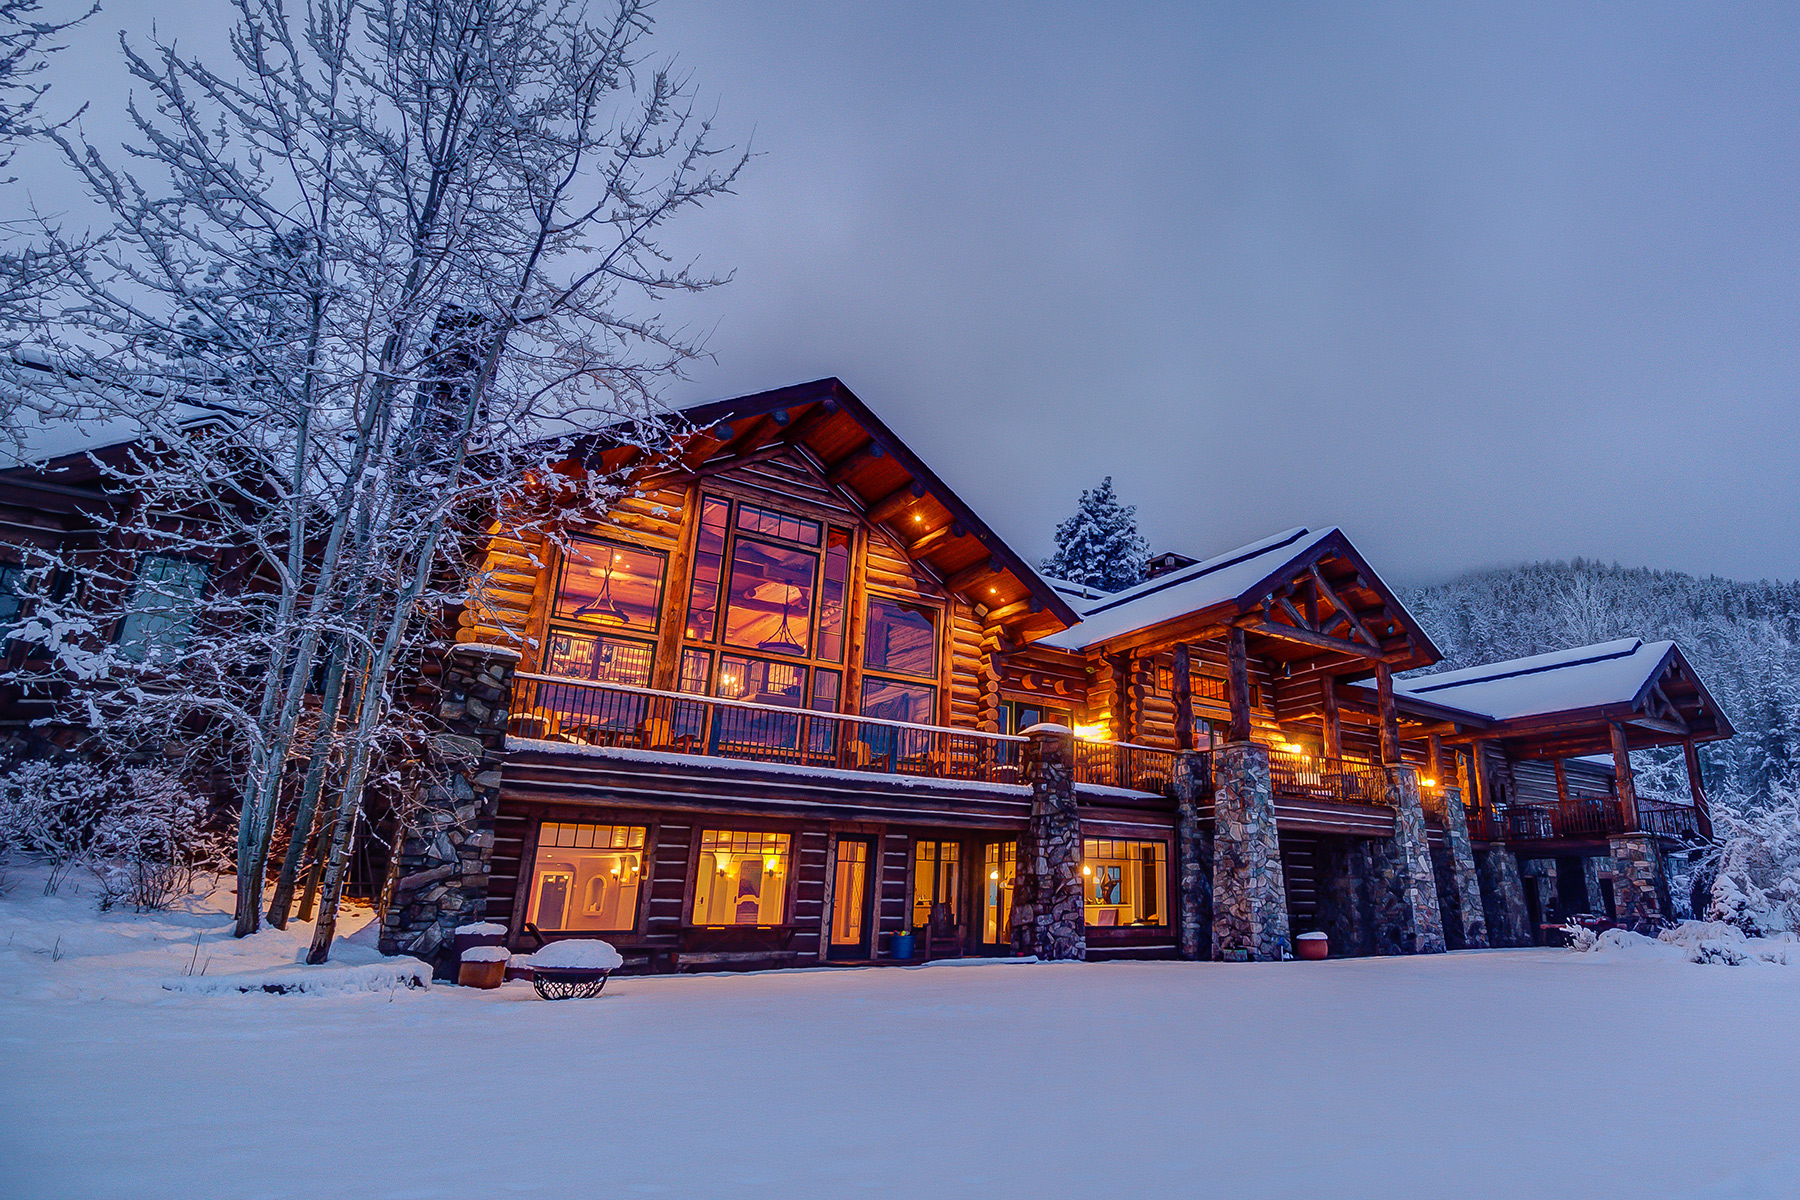 Single Family Home for Sale at Exquisite Log Home 510 Indian Prairie Loop Victor, Montana, 59875 United States